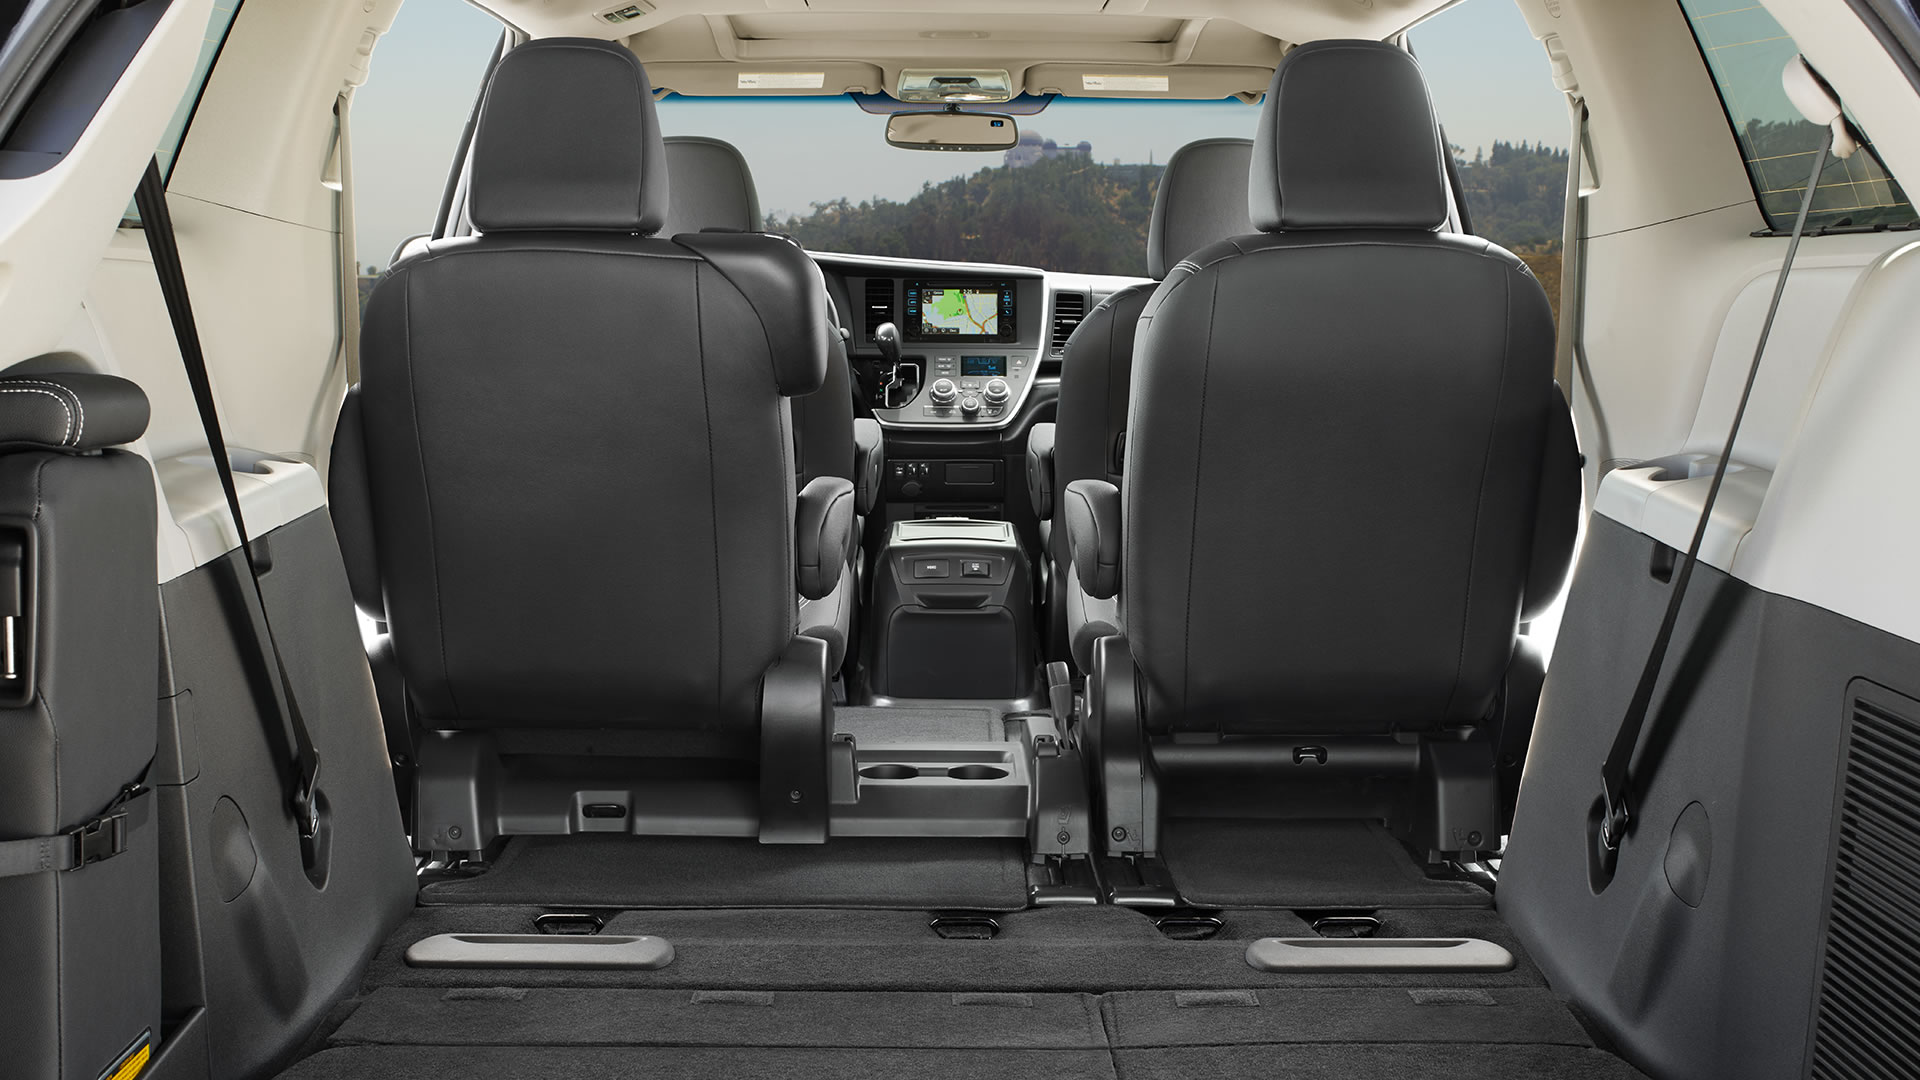 Attractive Toyota Sienna Interior Awesome Design